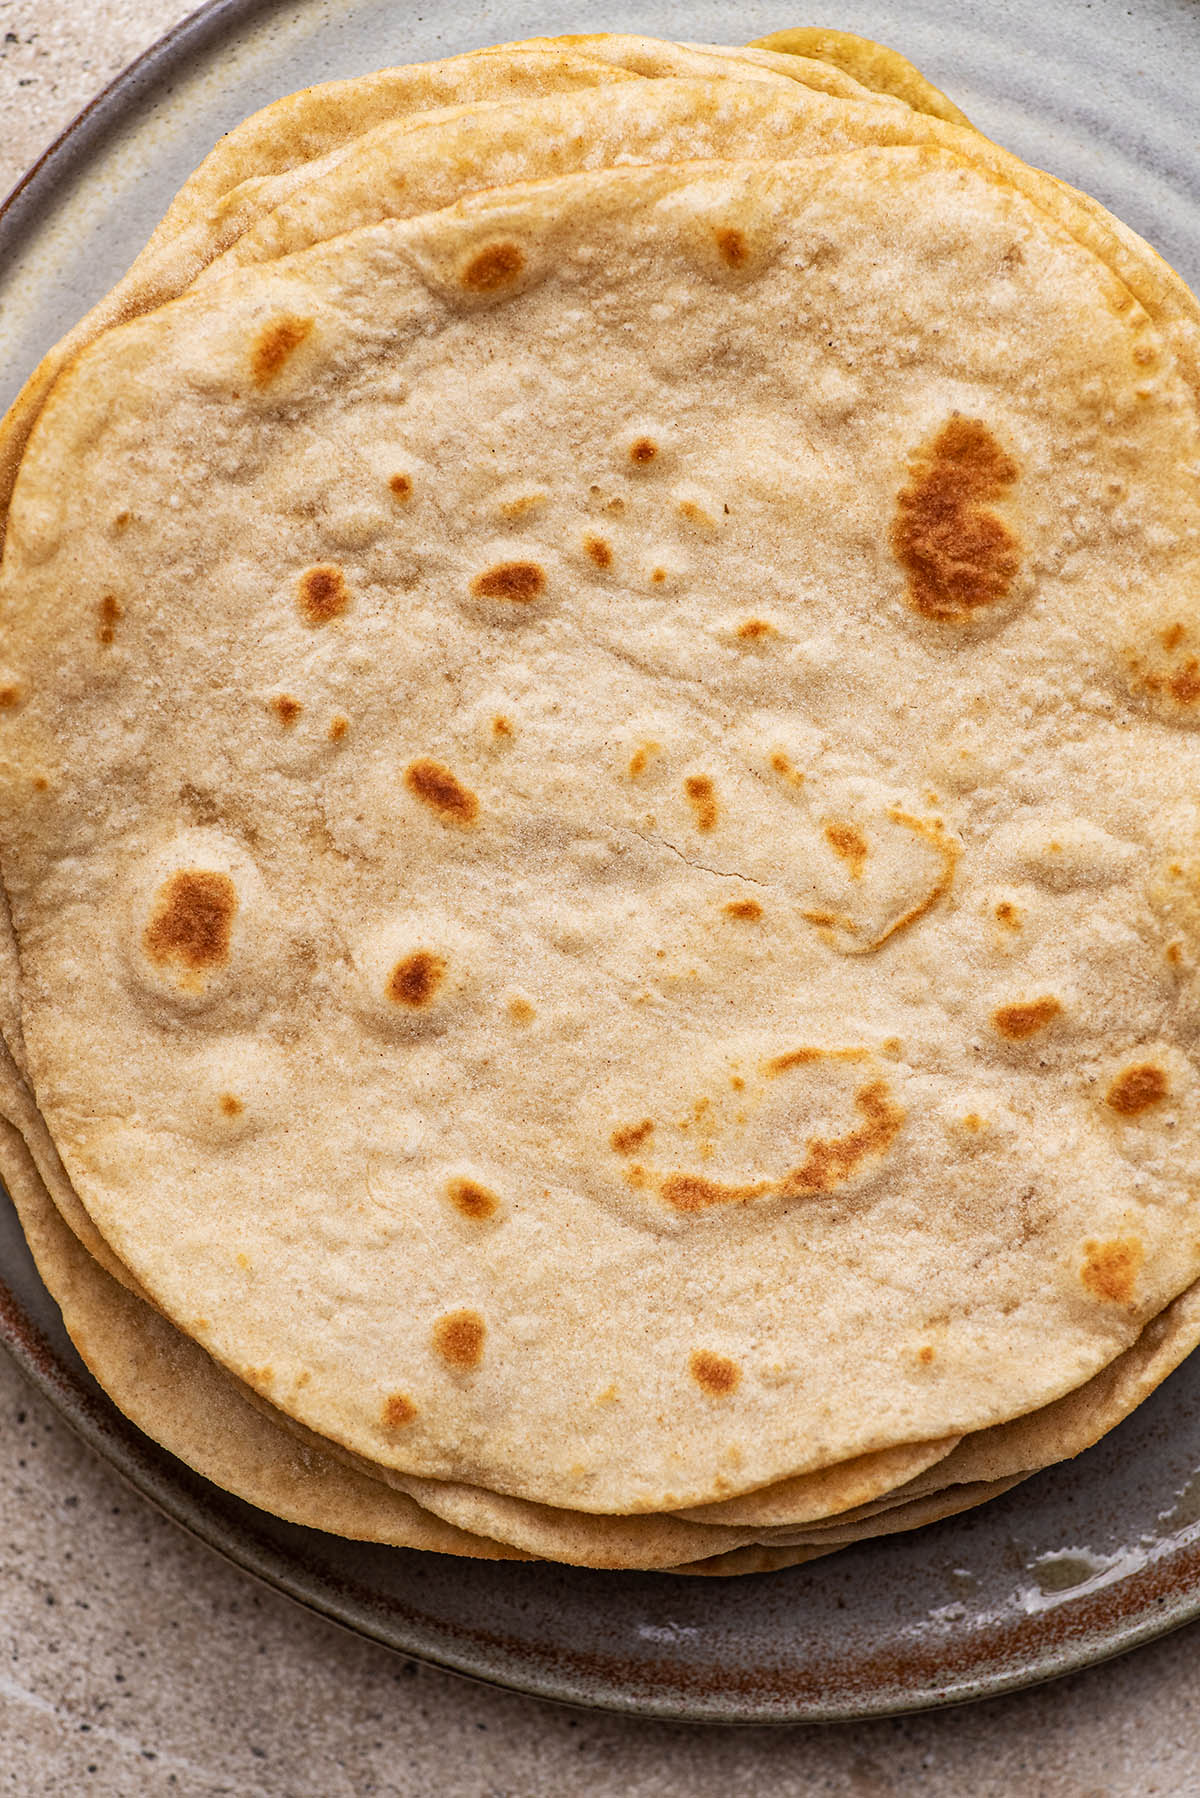 Sourdough tortillas stacked on a plate.